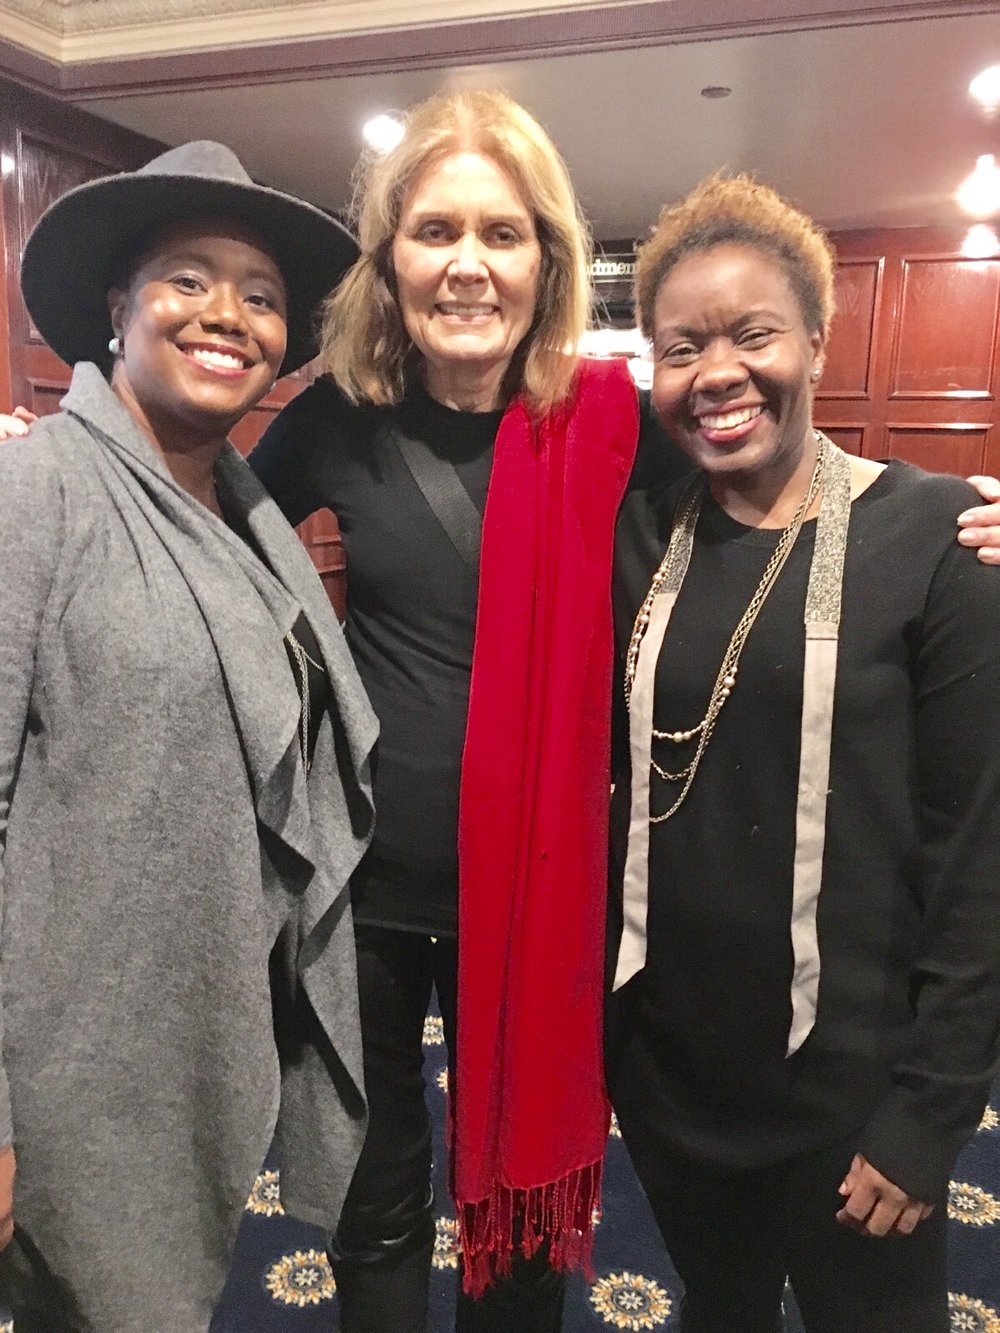 Kimberly Hall of Poverty & Race Research Action Council (wearing the hat); legendary Women's Rights Advocate, Gloria Steinem; and Judithe Registre, Host of the Get InPowered Podcast